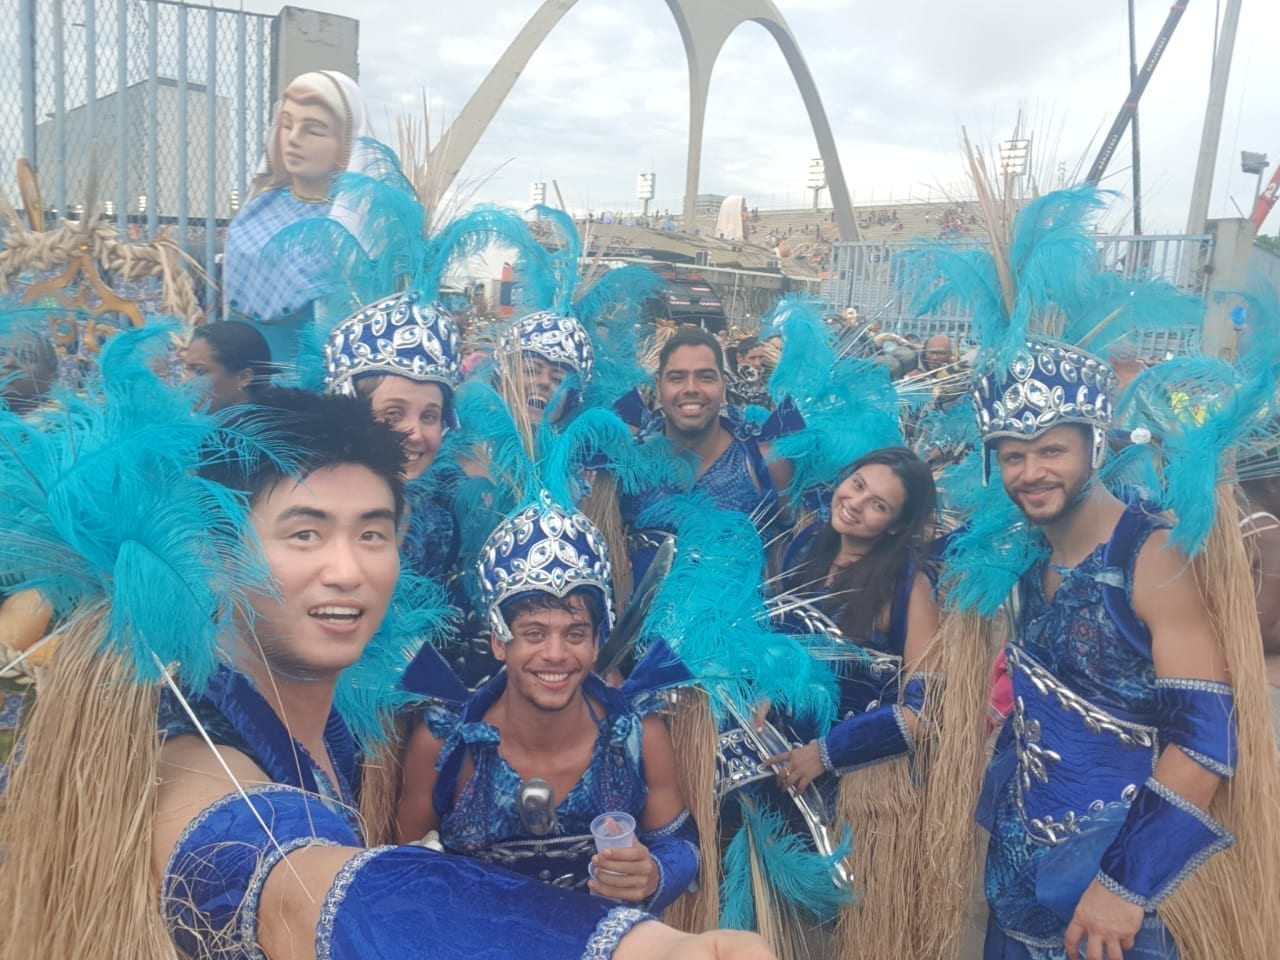 Students at the end of the parade for Rio Carnival 2019.